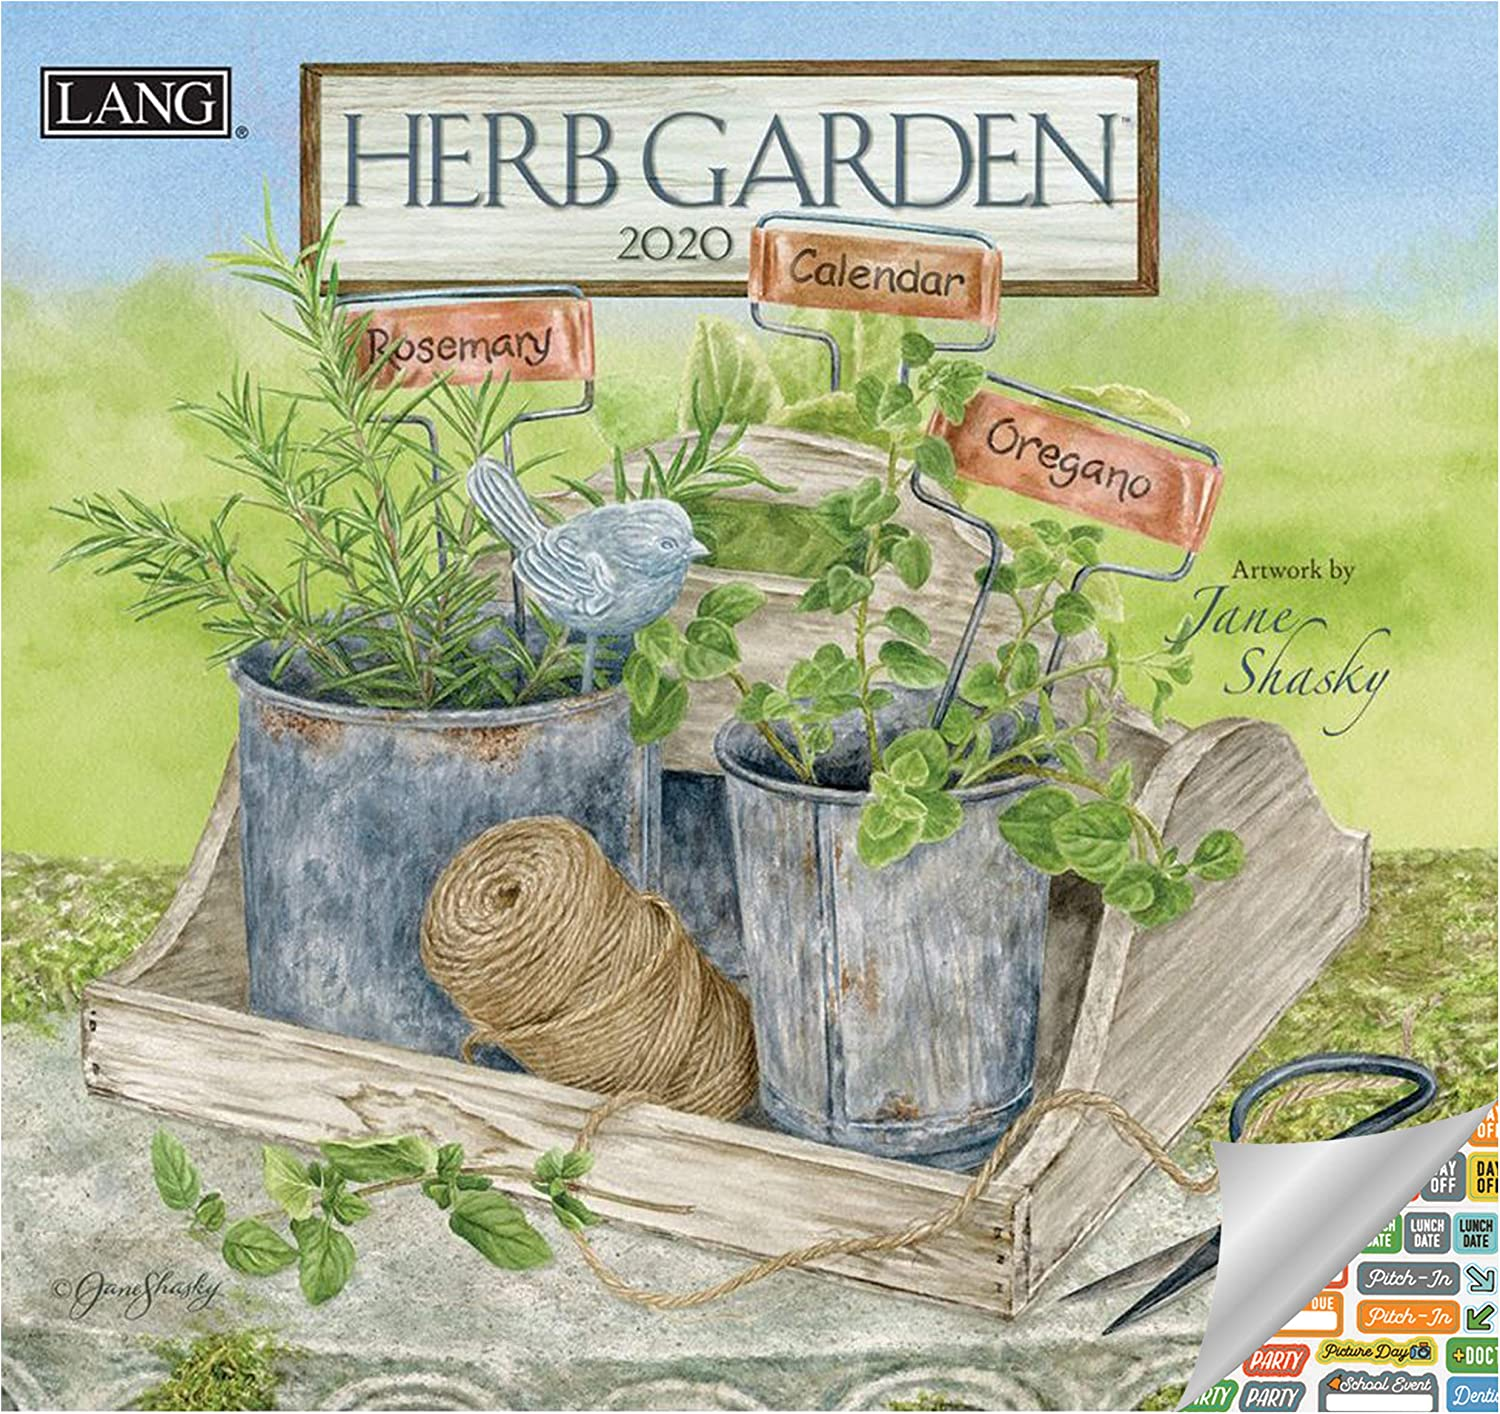 Lang Herb Garden Calendar 2020 Herb Garden Wall Calendar Bundle with Over 100 Calendar Stickers